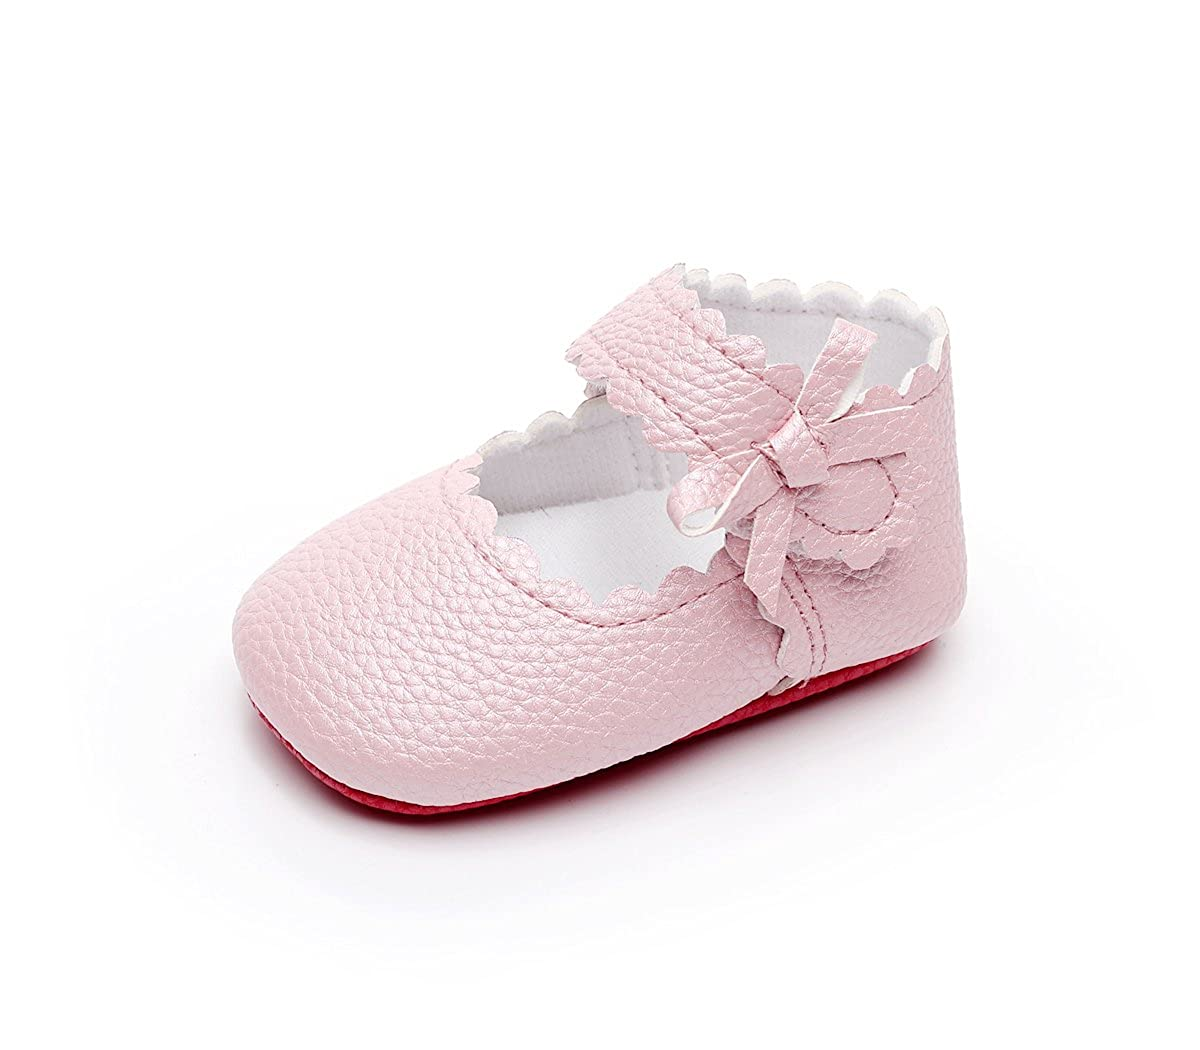 477674be7846 HONGTEYA Baby Girls Red Bottom Ballet Dress Shoes - Mary Jane Soft Sole  Sidebow Toddler Moccasins